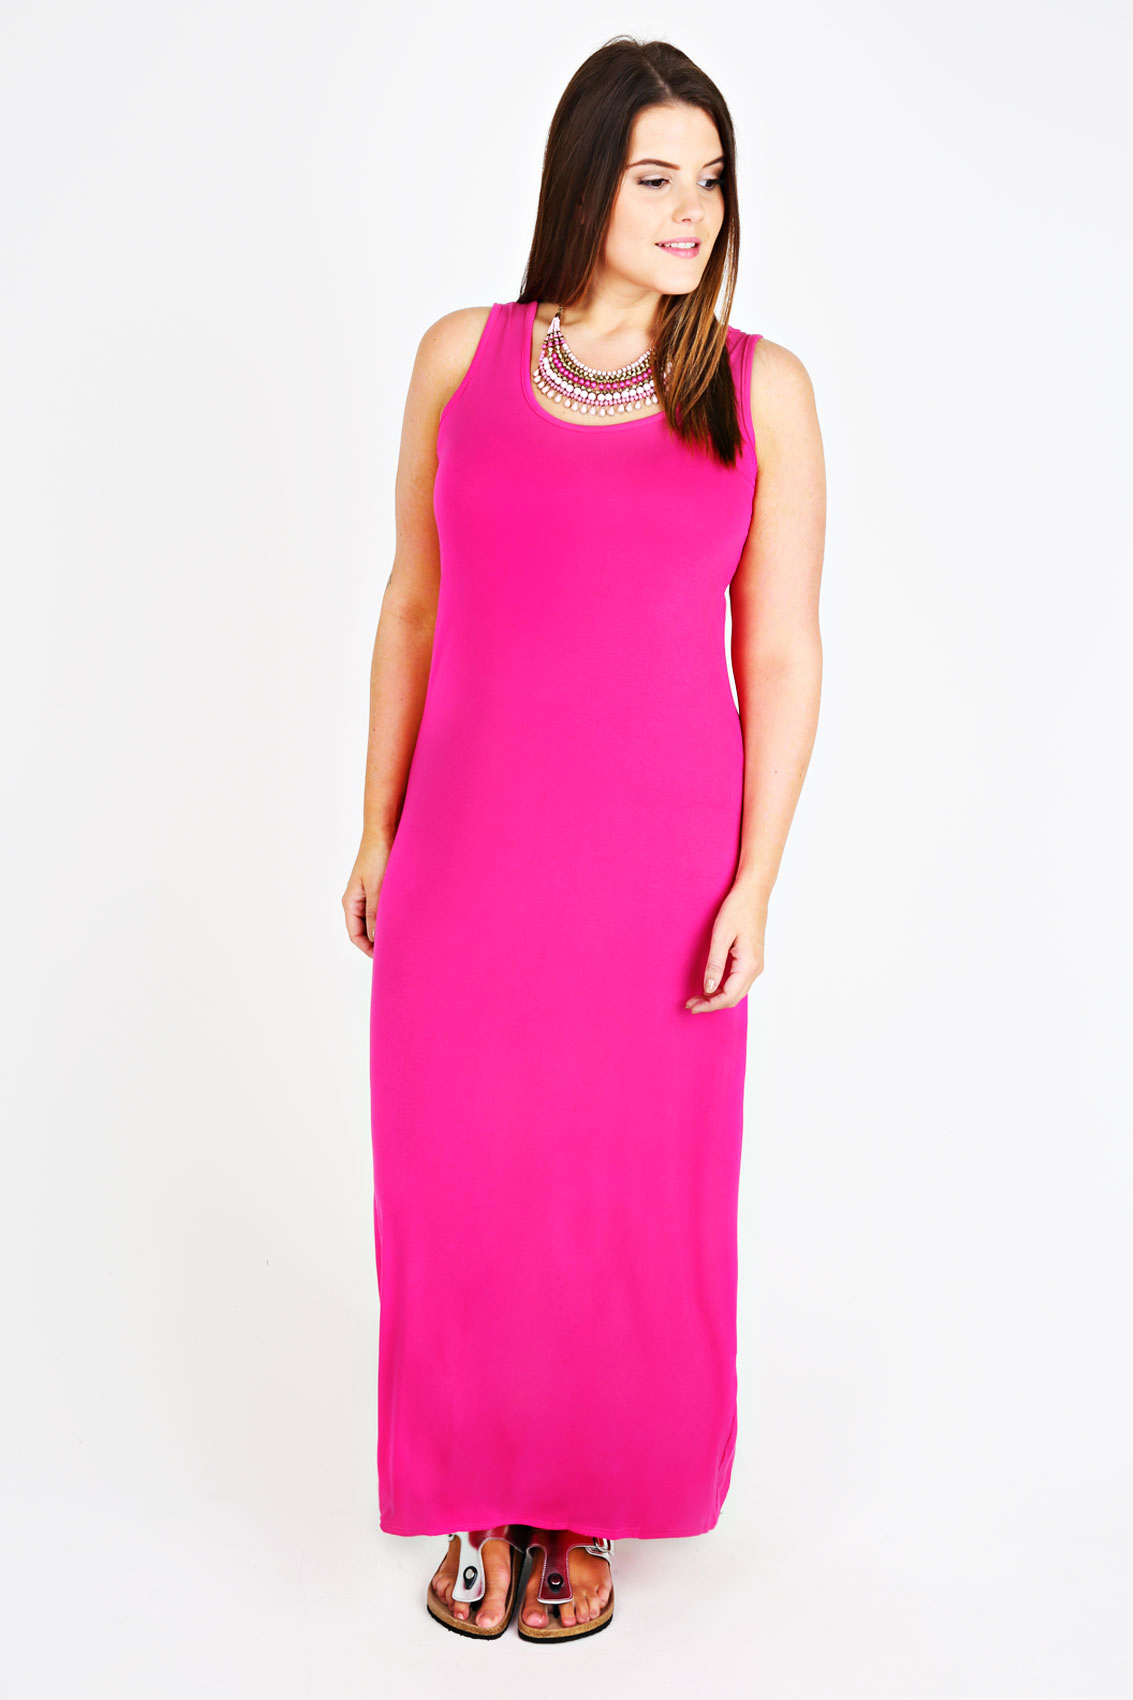 Plus Size Pink Maxi Dress Uk - Formal Dresses